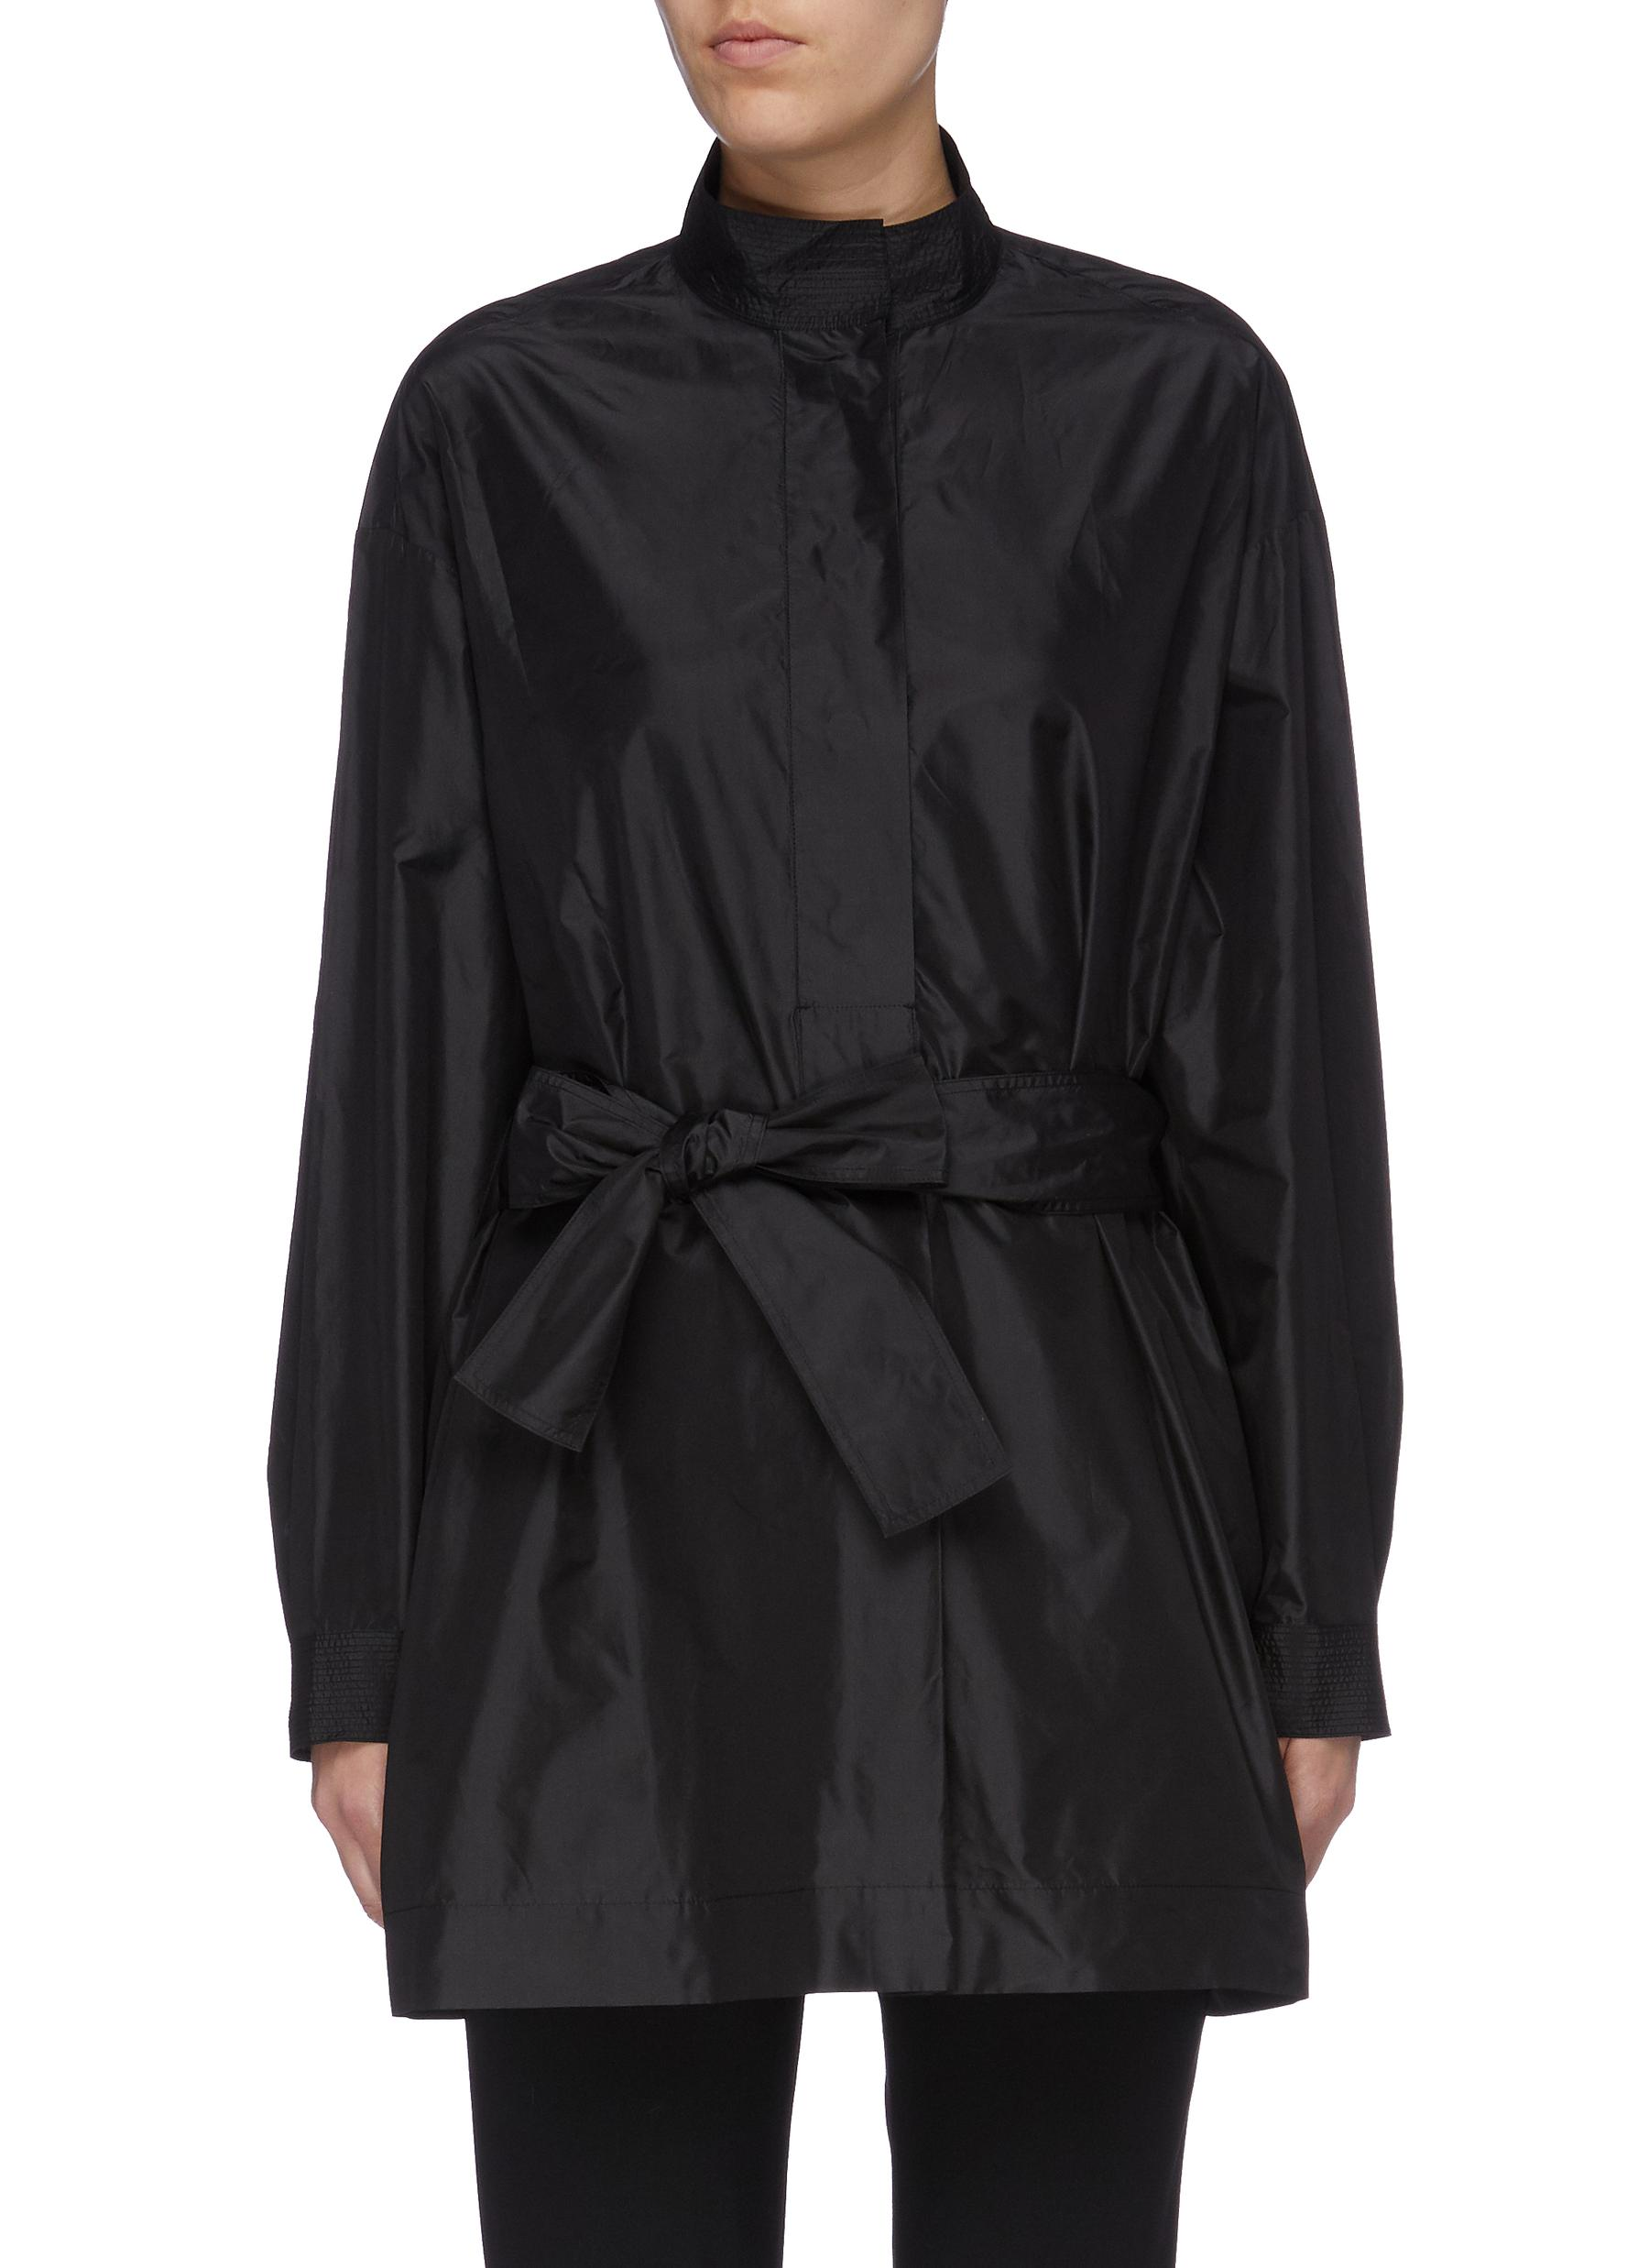 Big Varo belted oversized silk tunic shirt by The Row